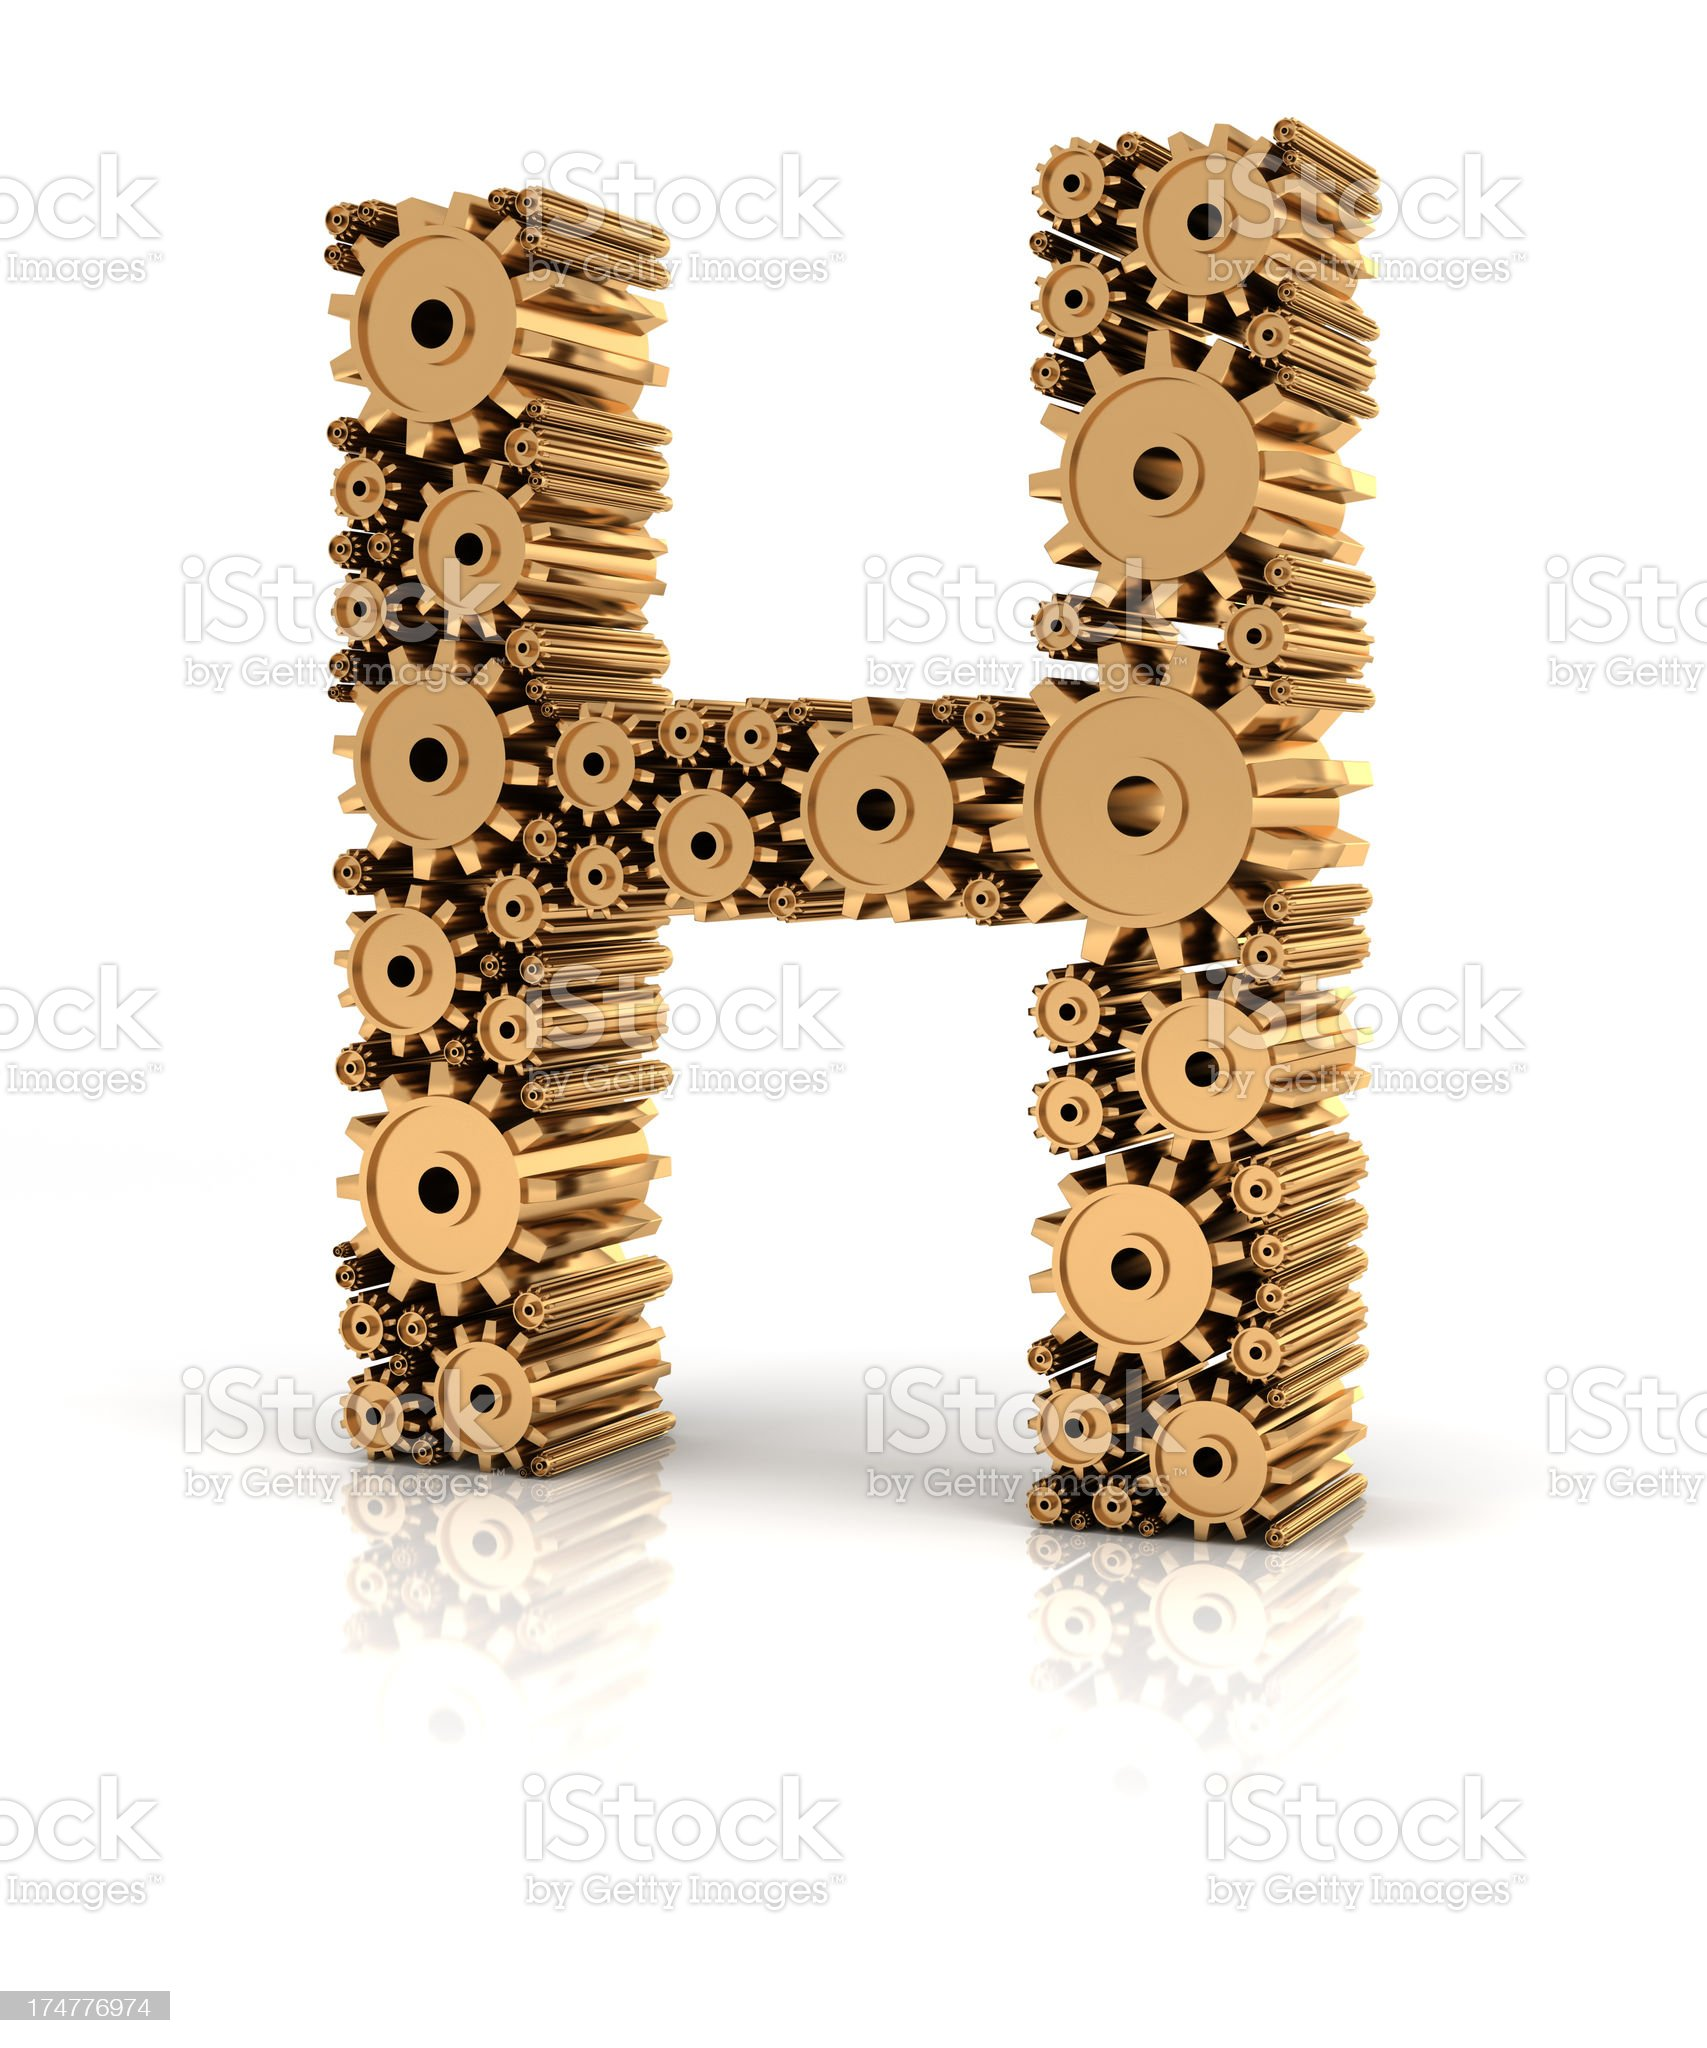 Alphabet H formed by gears royalty-free stock photo